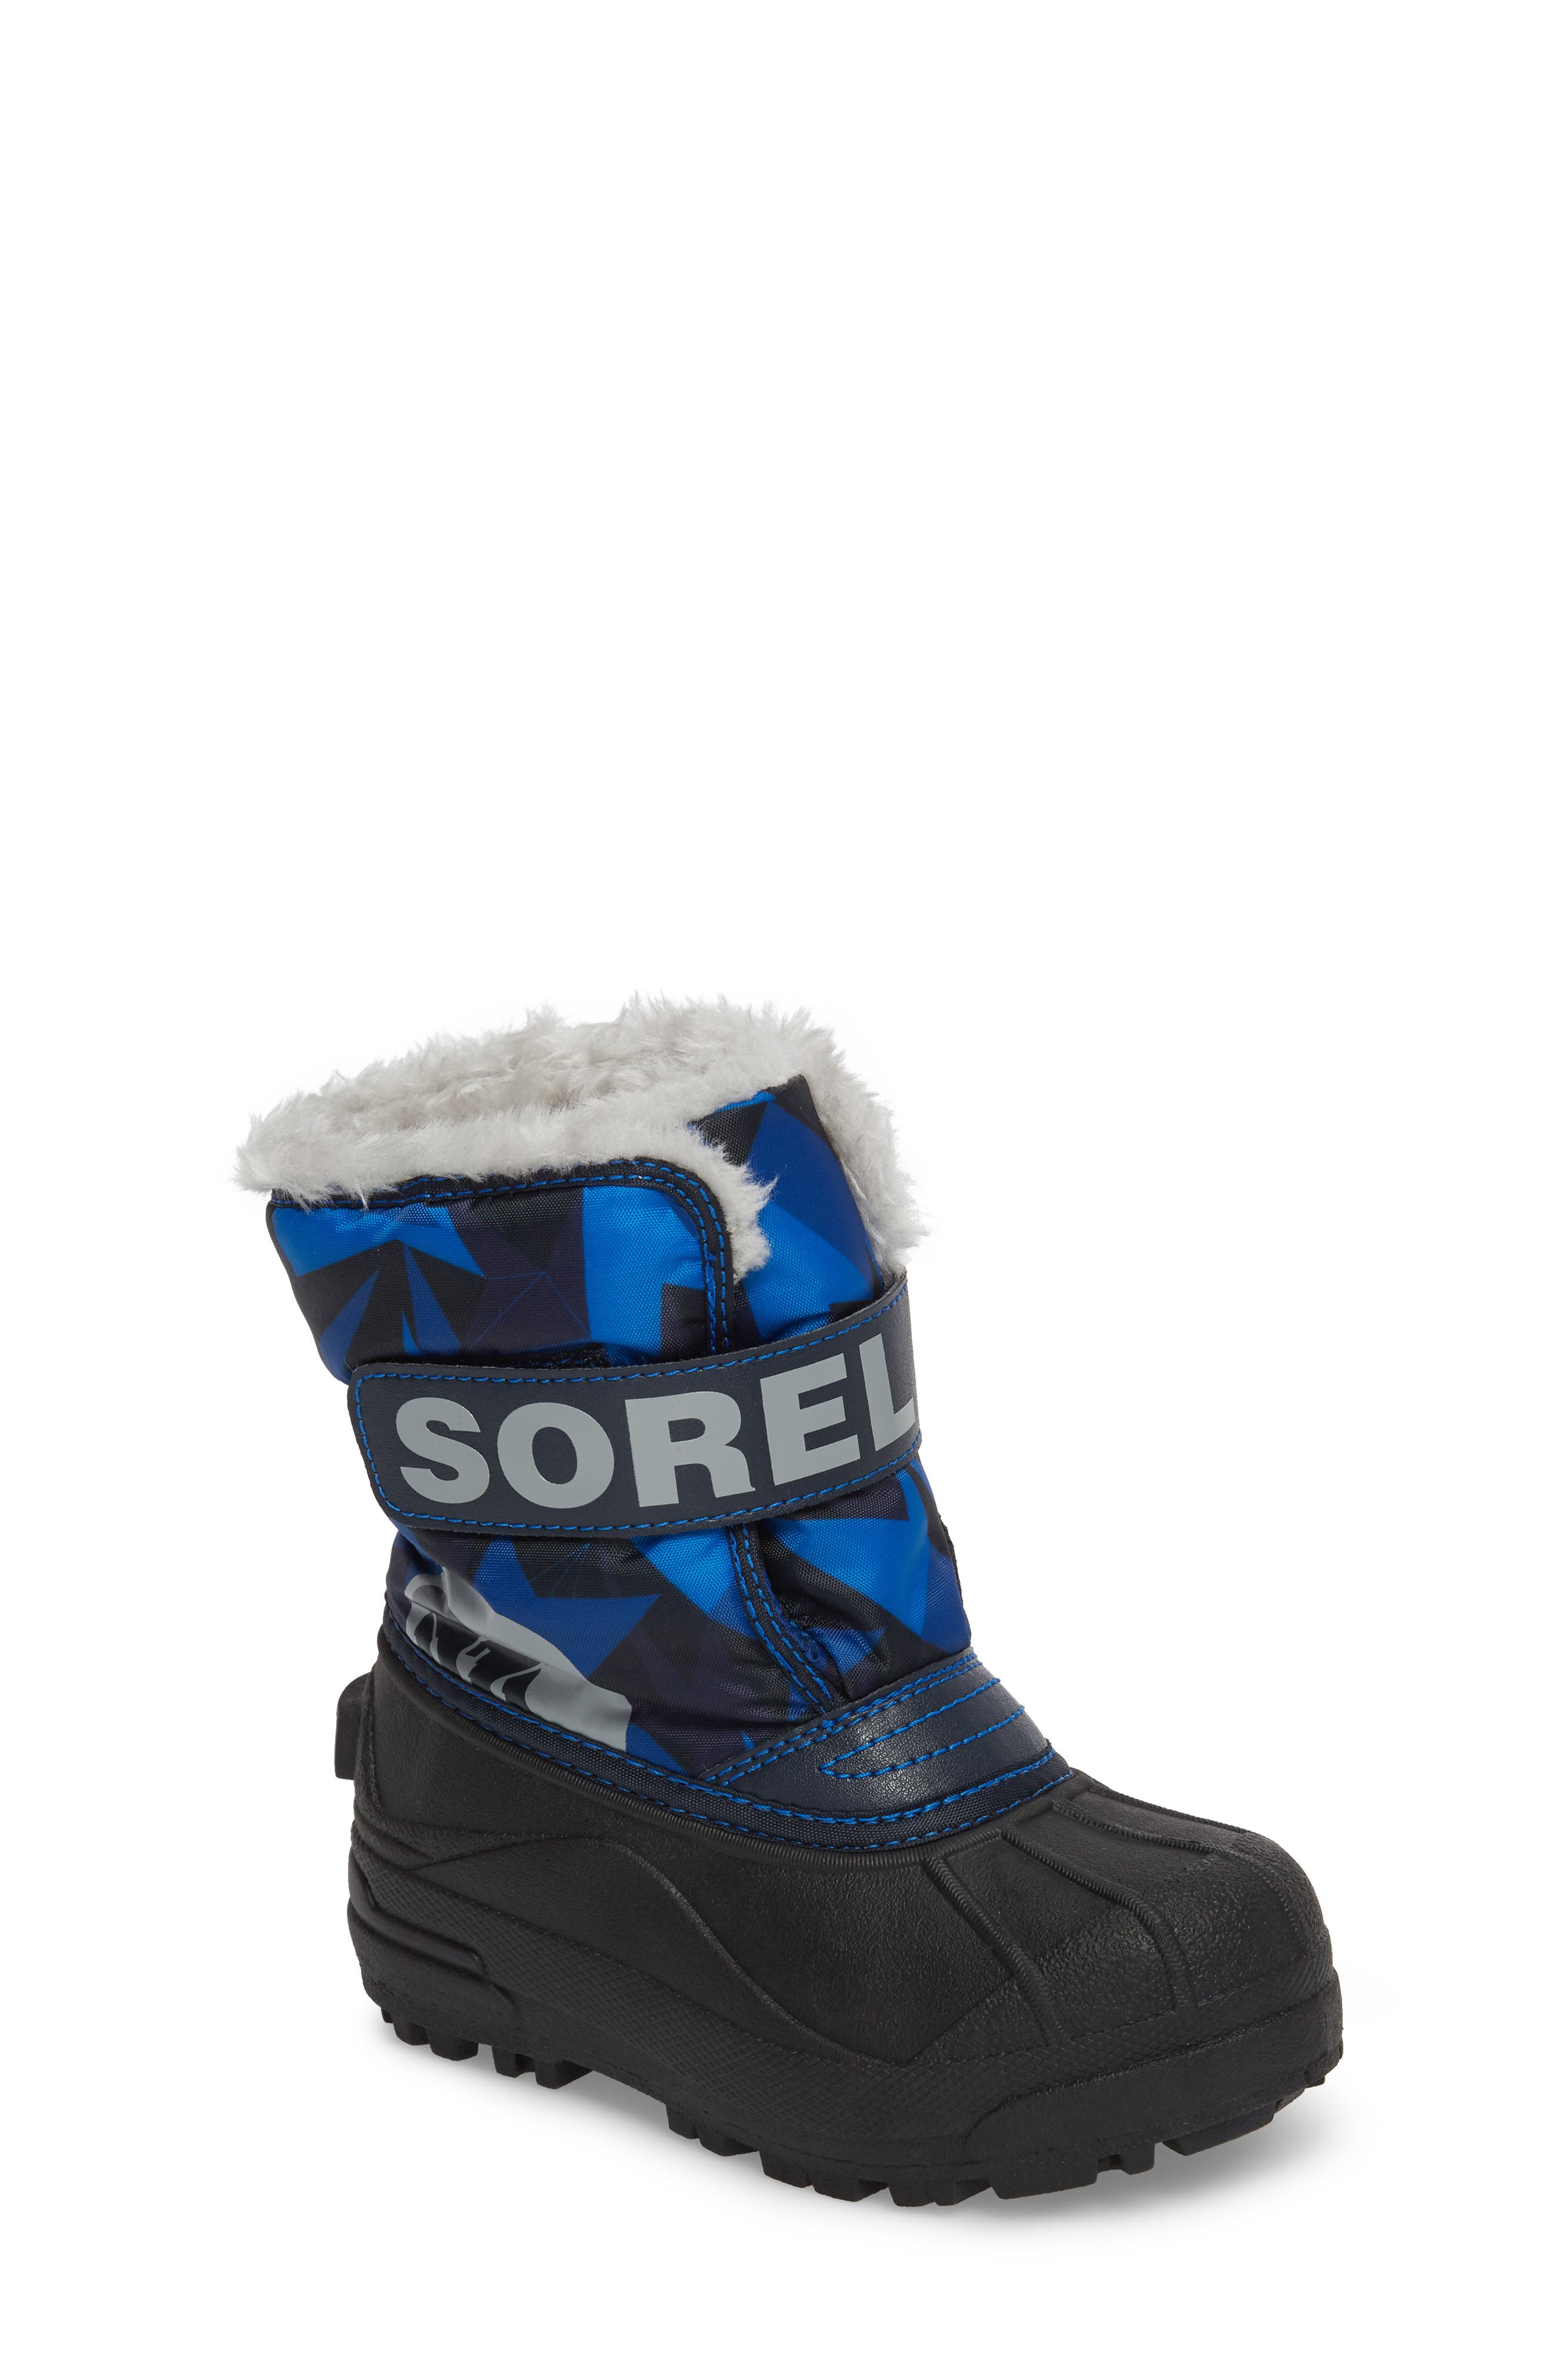 Children's Snow Commander Insulated Waterproof Boot,                             Main thumbnail 1, color,                             439